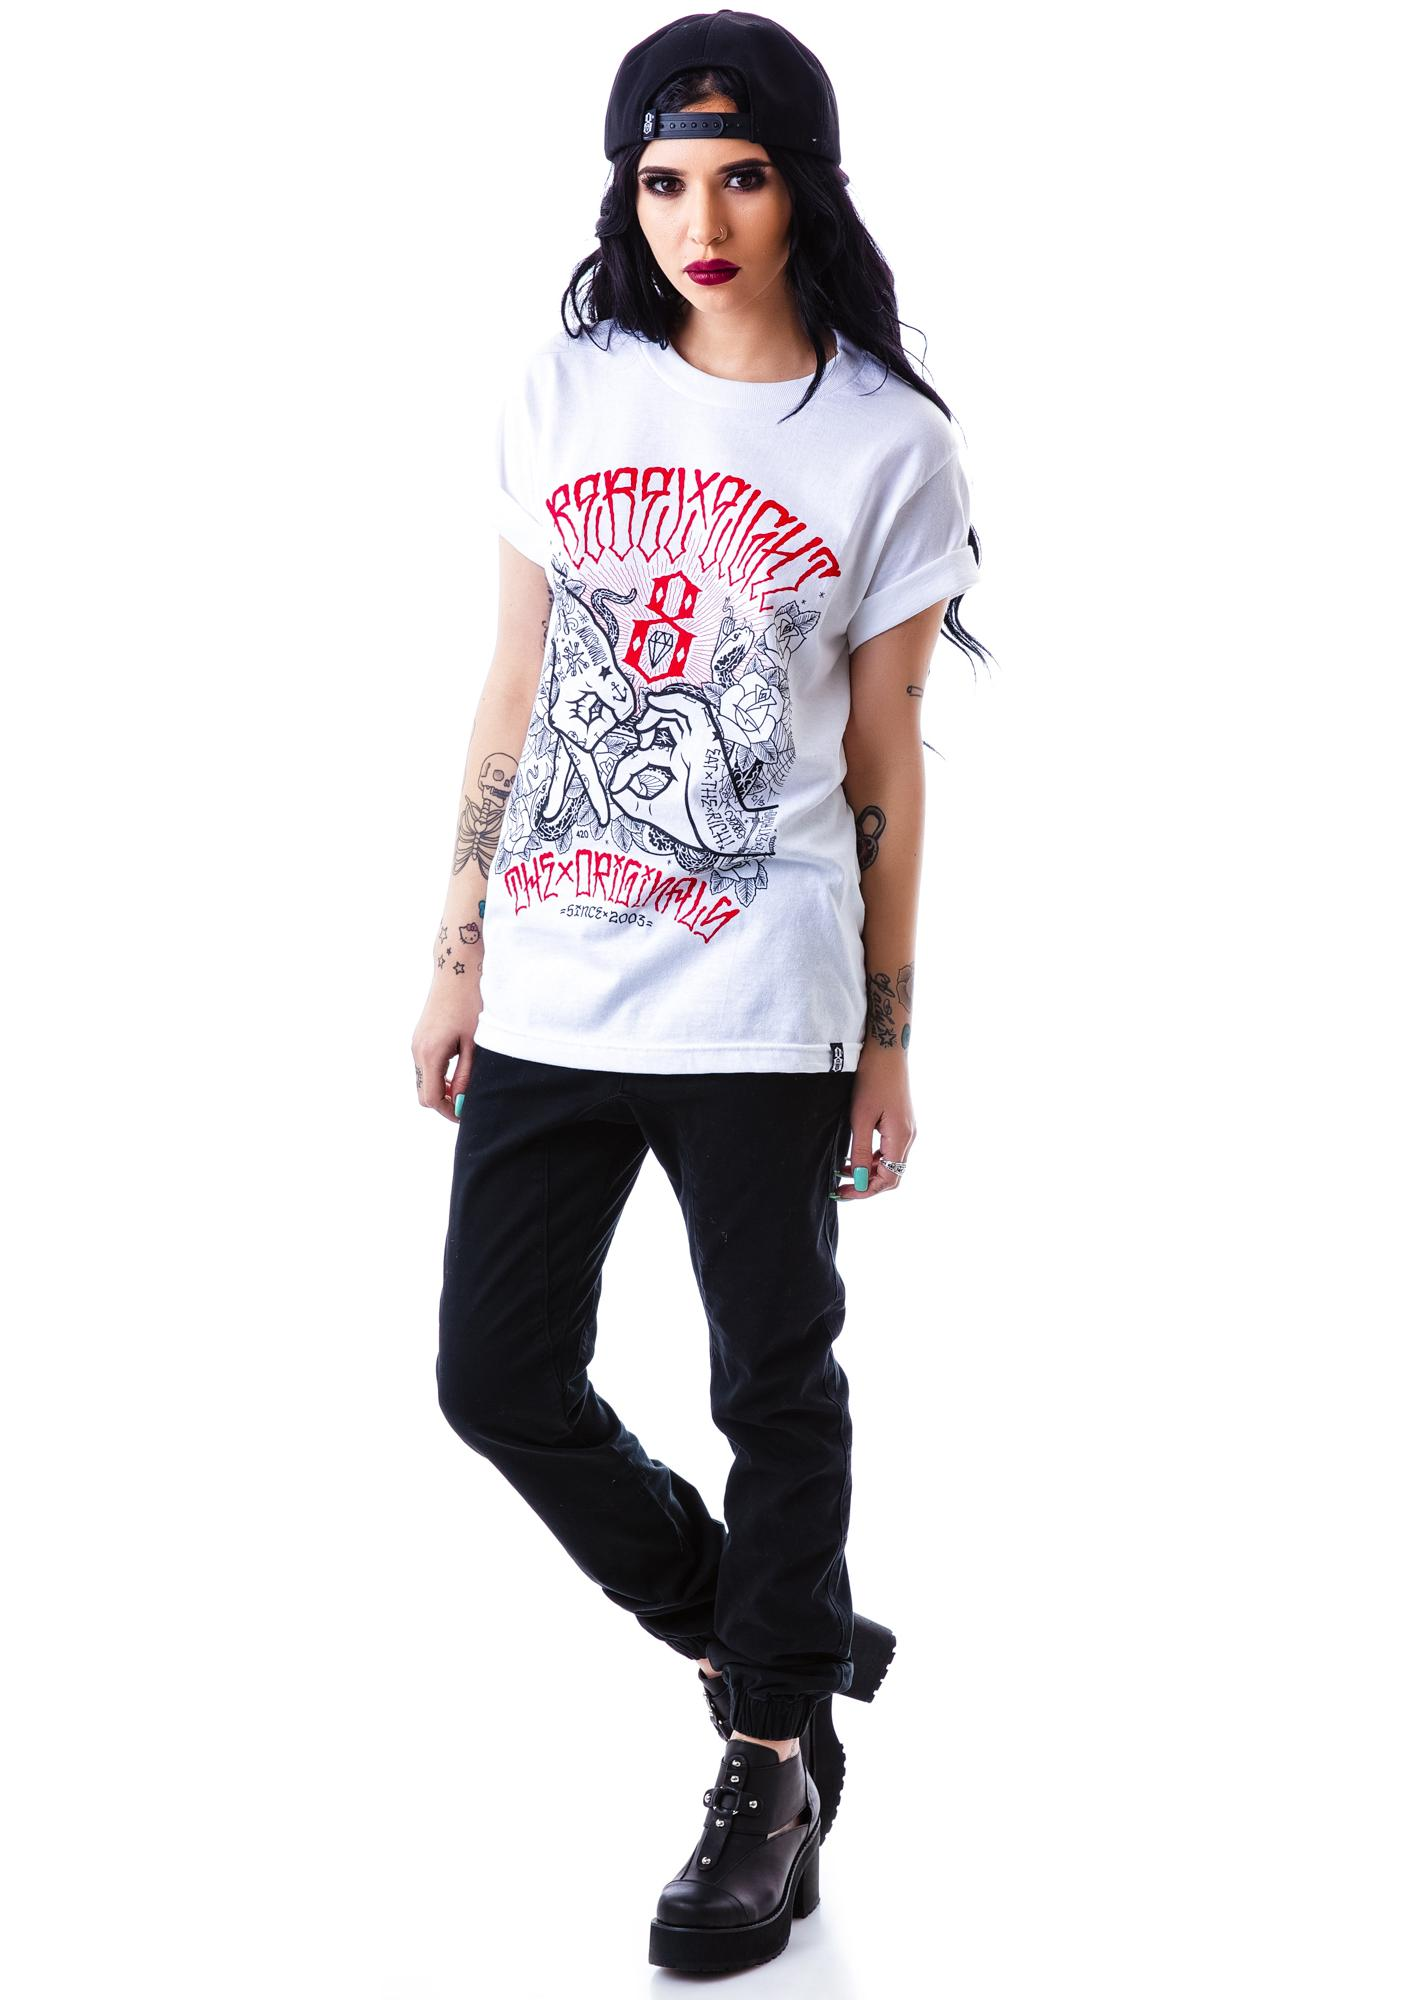 Rebel8 Hand Signs Tee